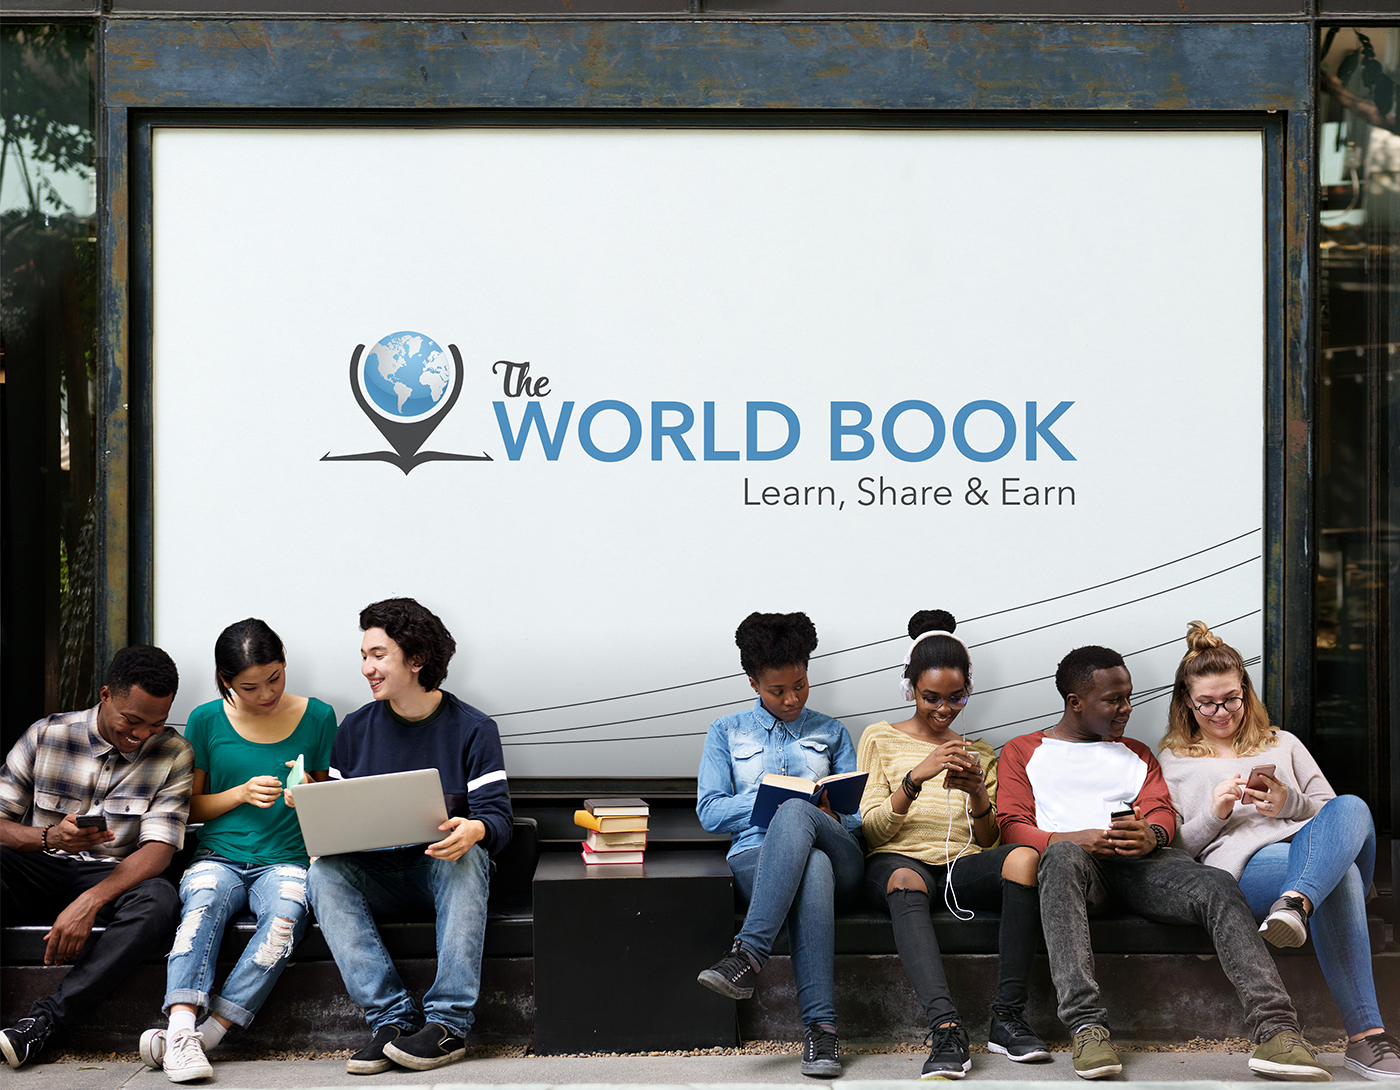 The world book campus